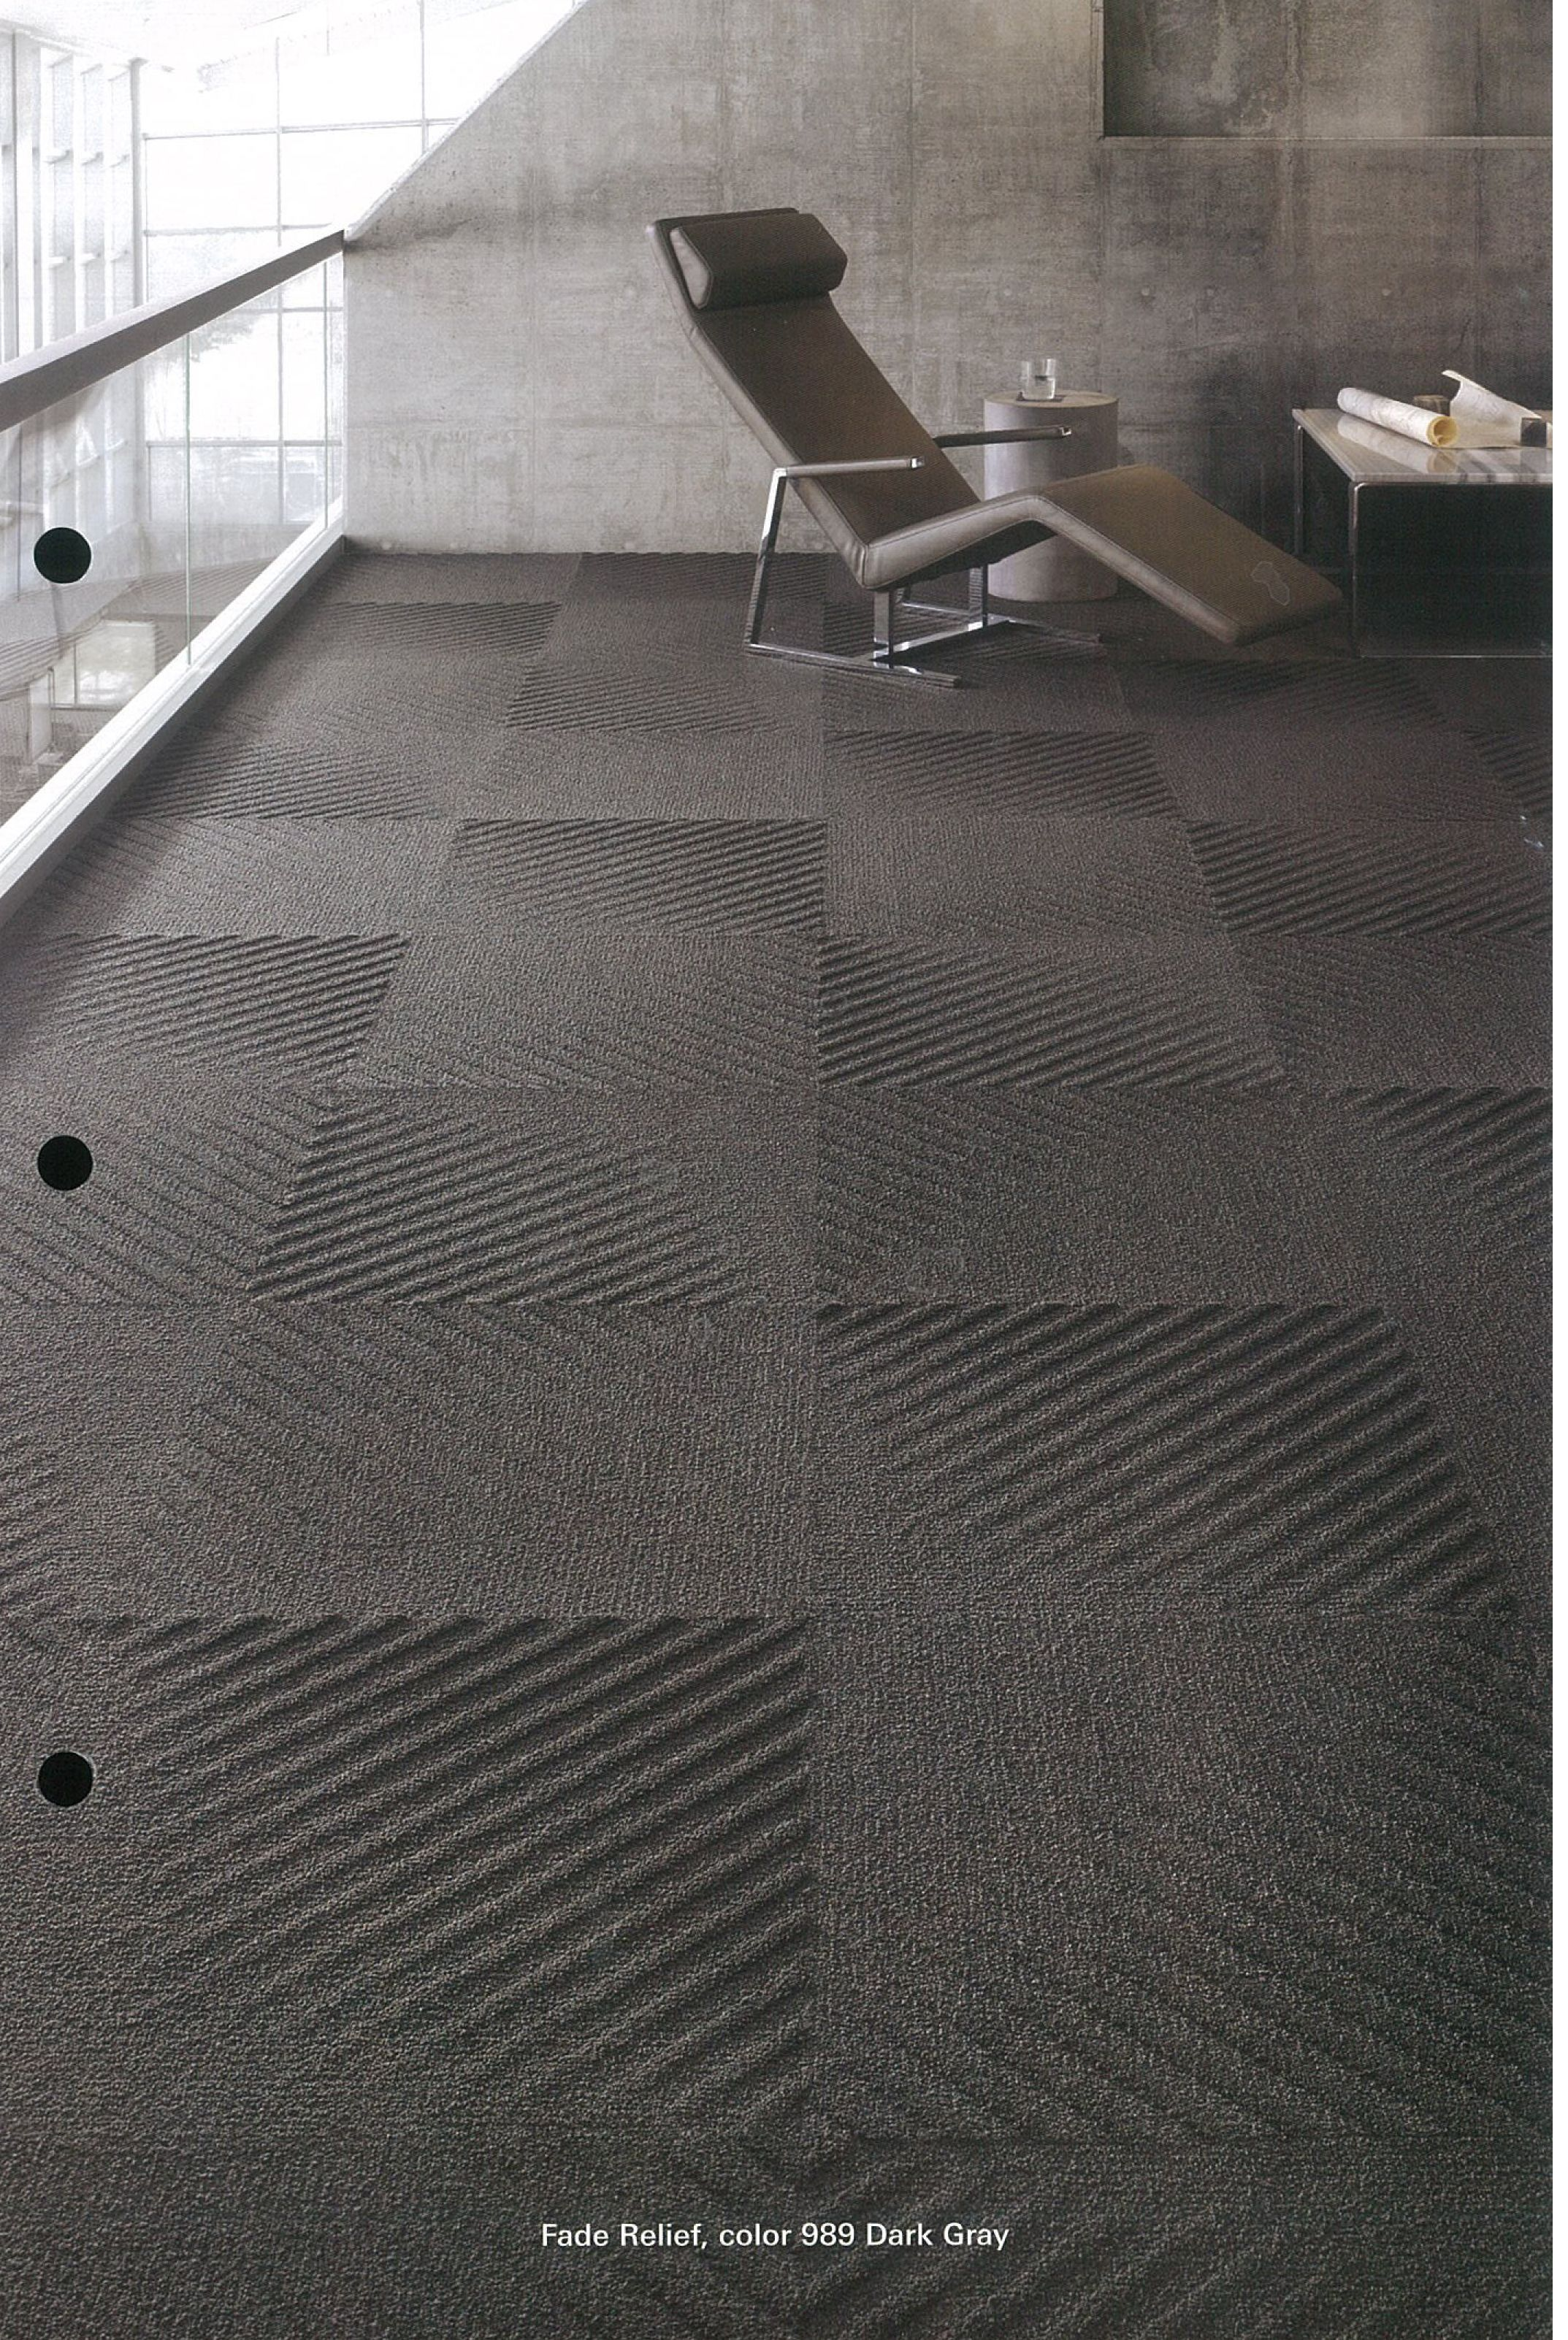 Pin by karube munemitsu on carpet pinterest such a fun and industrial look and modern feel mohawk carpet tiles are available at express flooring in phoenix arizona dailygadgetfo Images